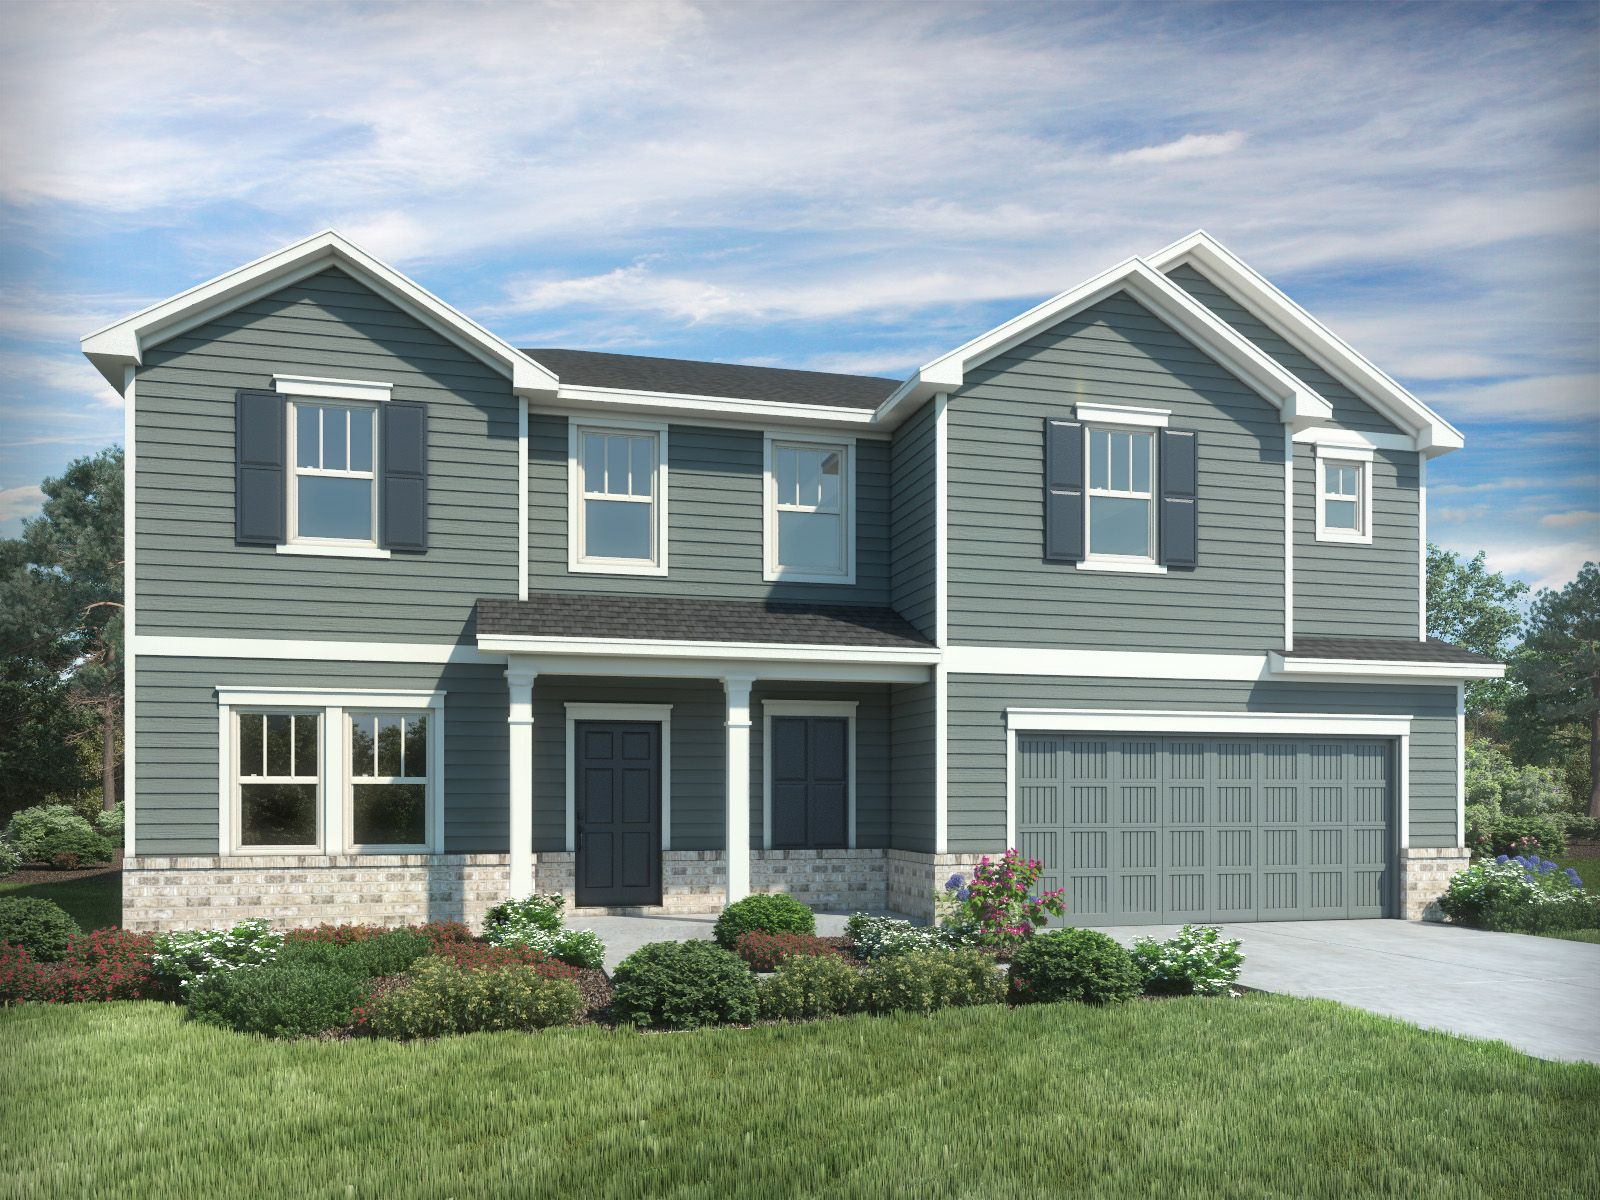 Fine New Construction Homes Plans In Coats Nc 2 152 Homes Download Free Architecture Designs Licukmadebymaigaardcom